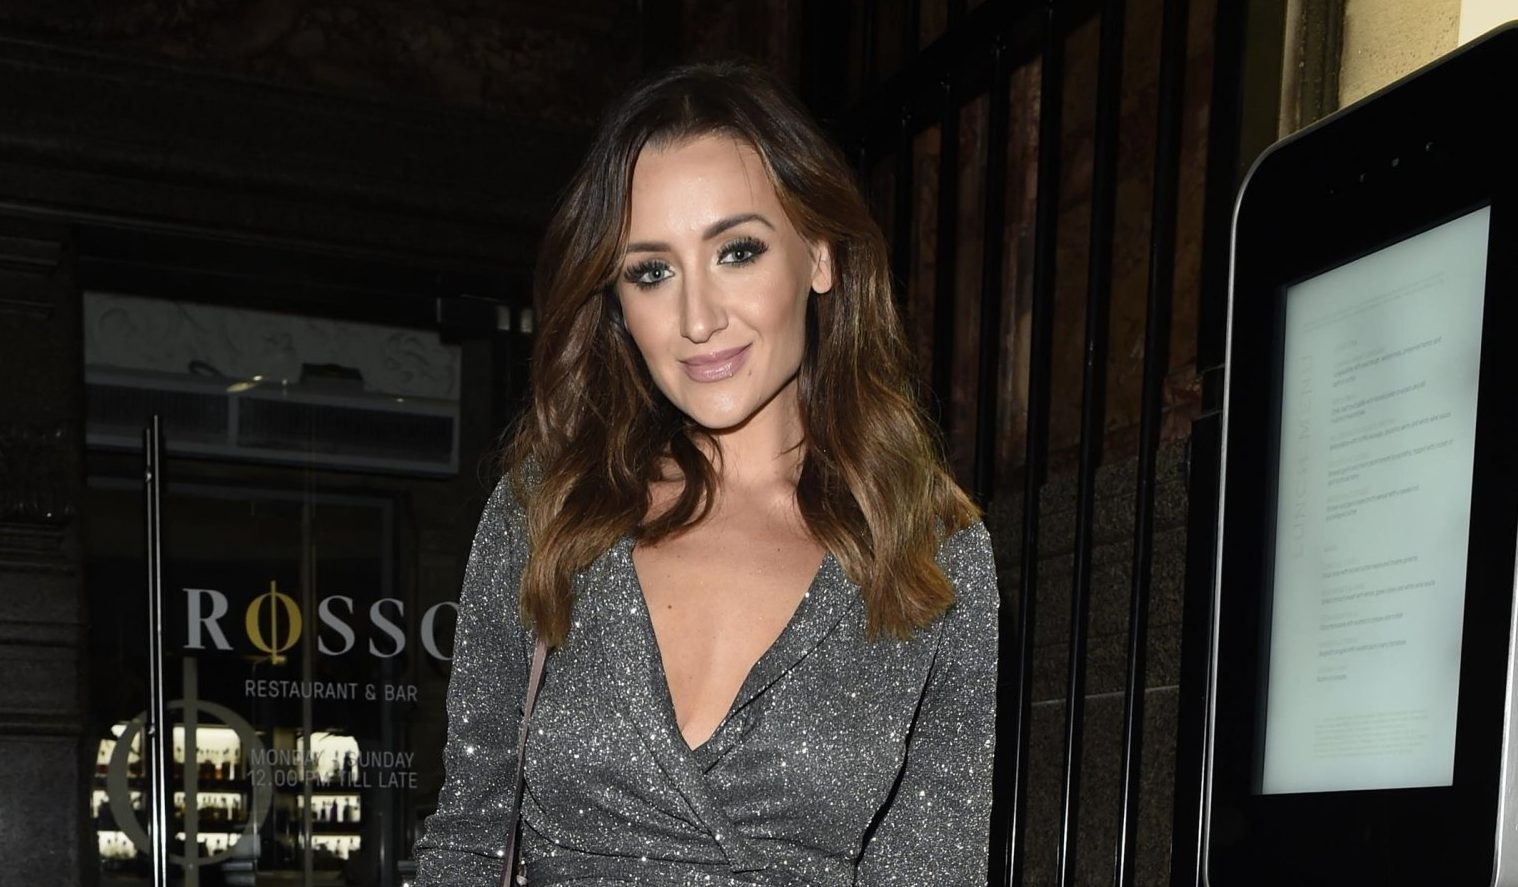 Former Coronation Street star Catherine Tyldesley rages at traffic warden who called her a 'cow' for stopping to tend to son